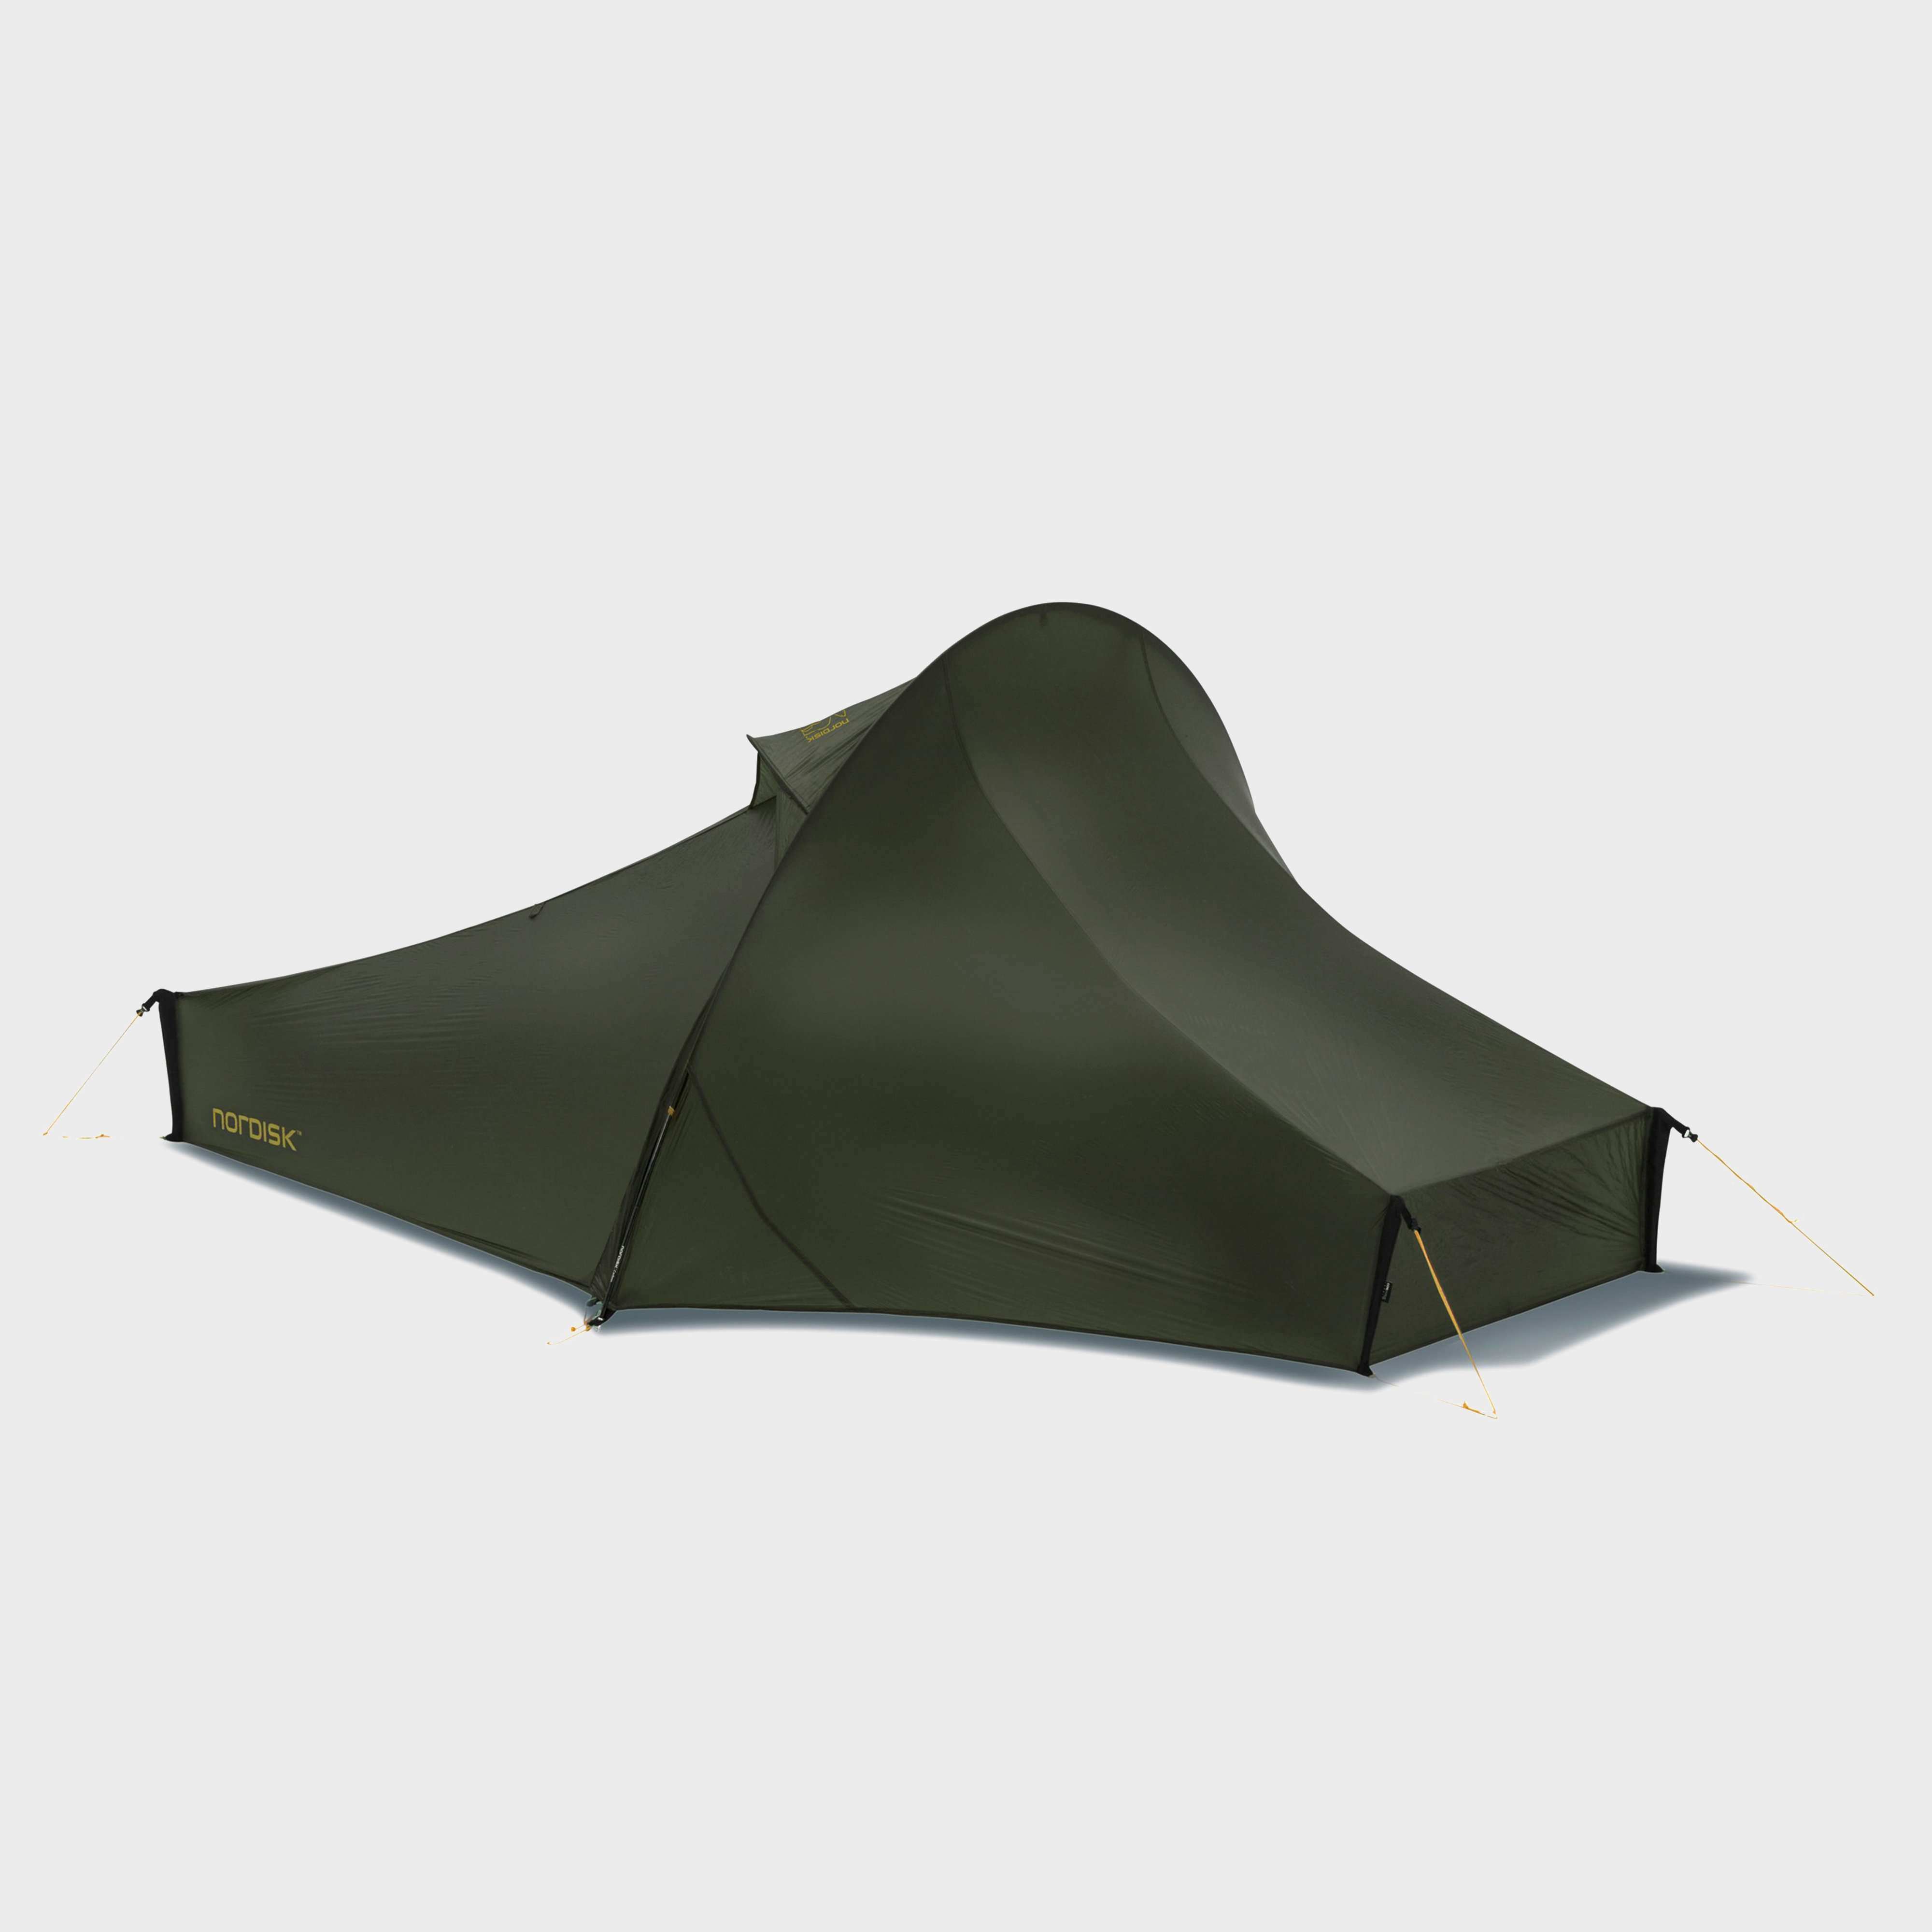 NORDISK Telemark 2 Person Tent